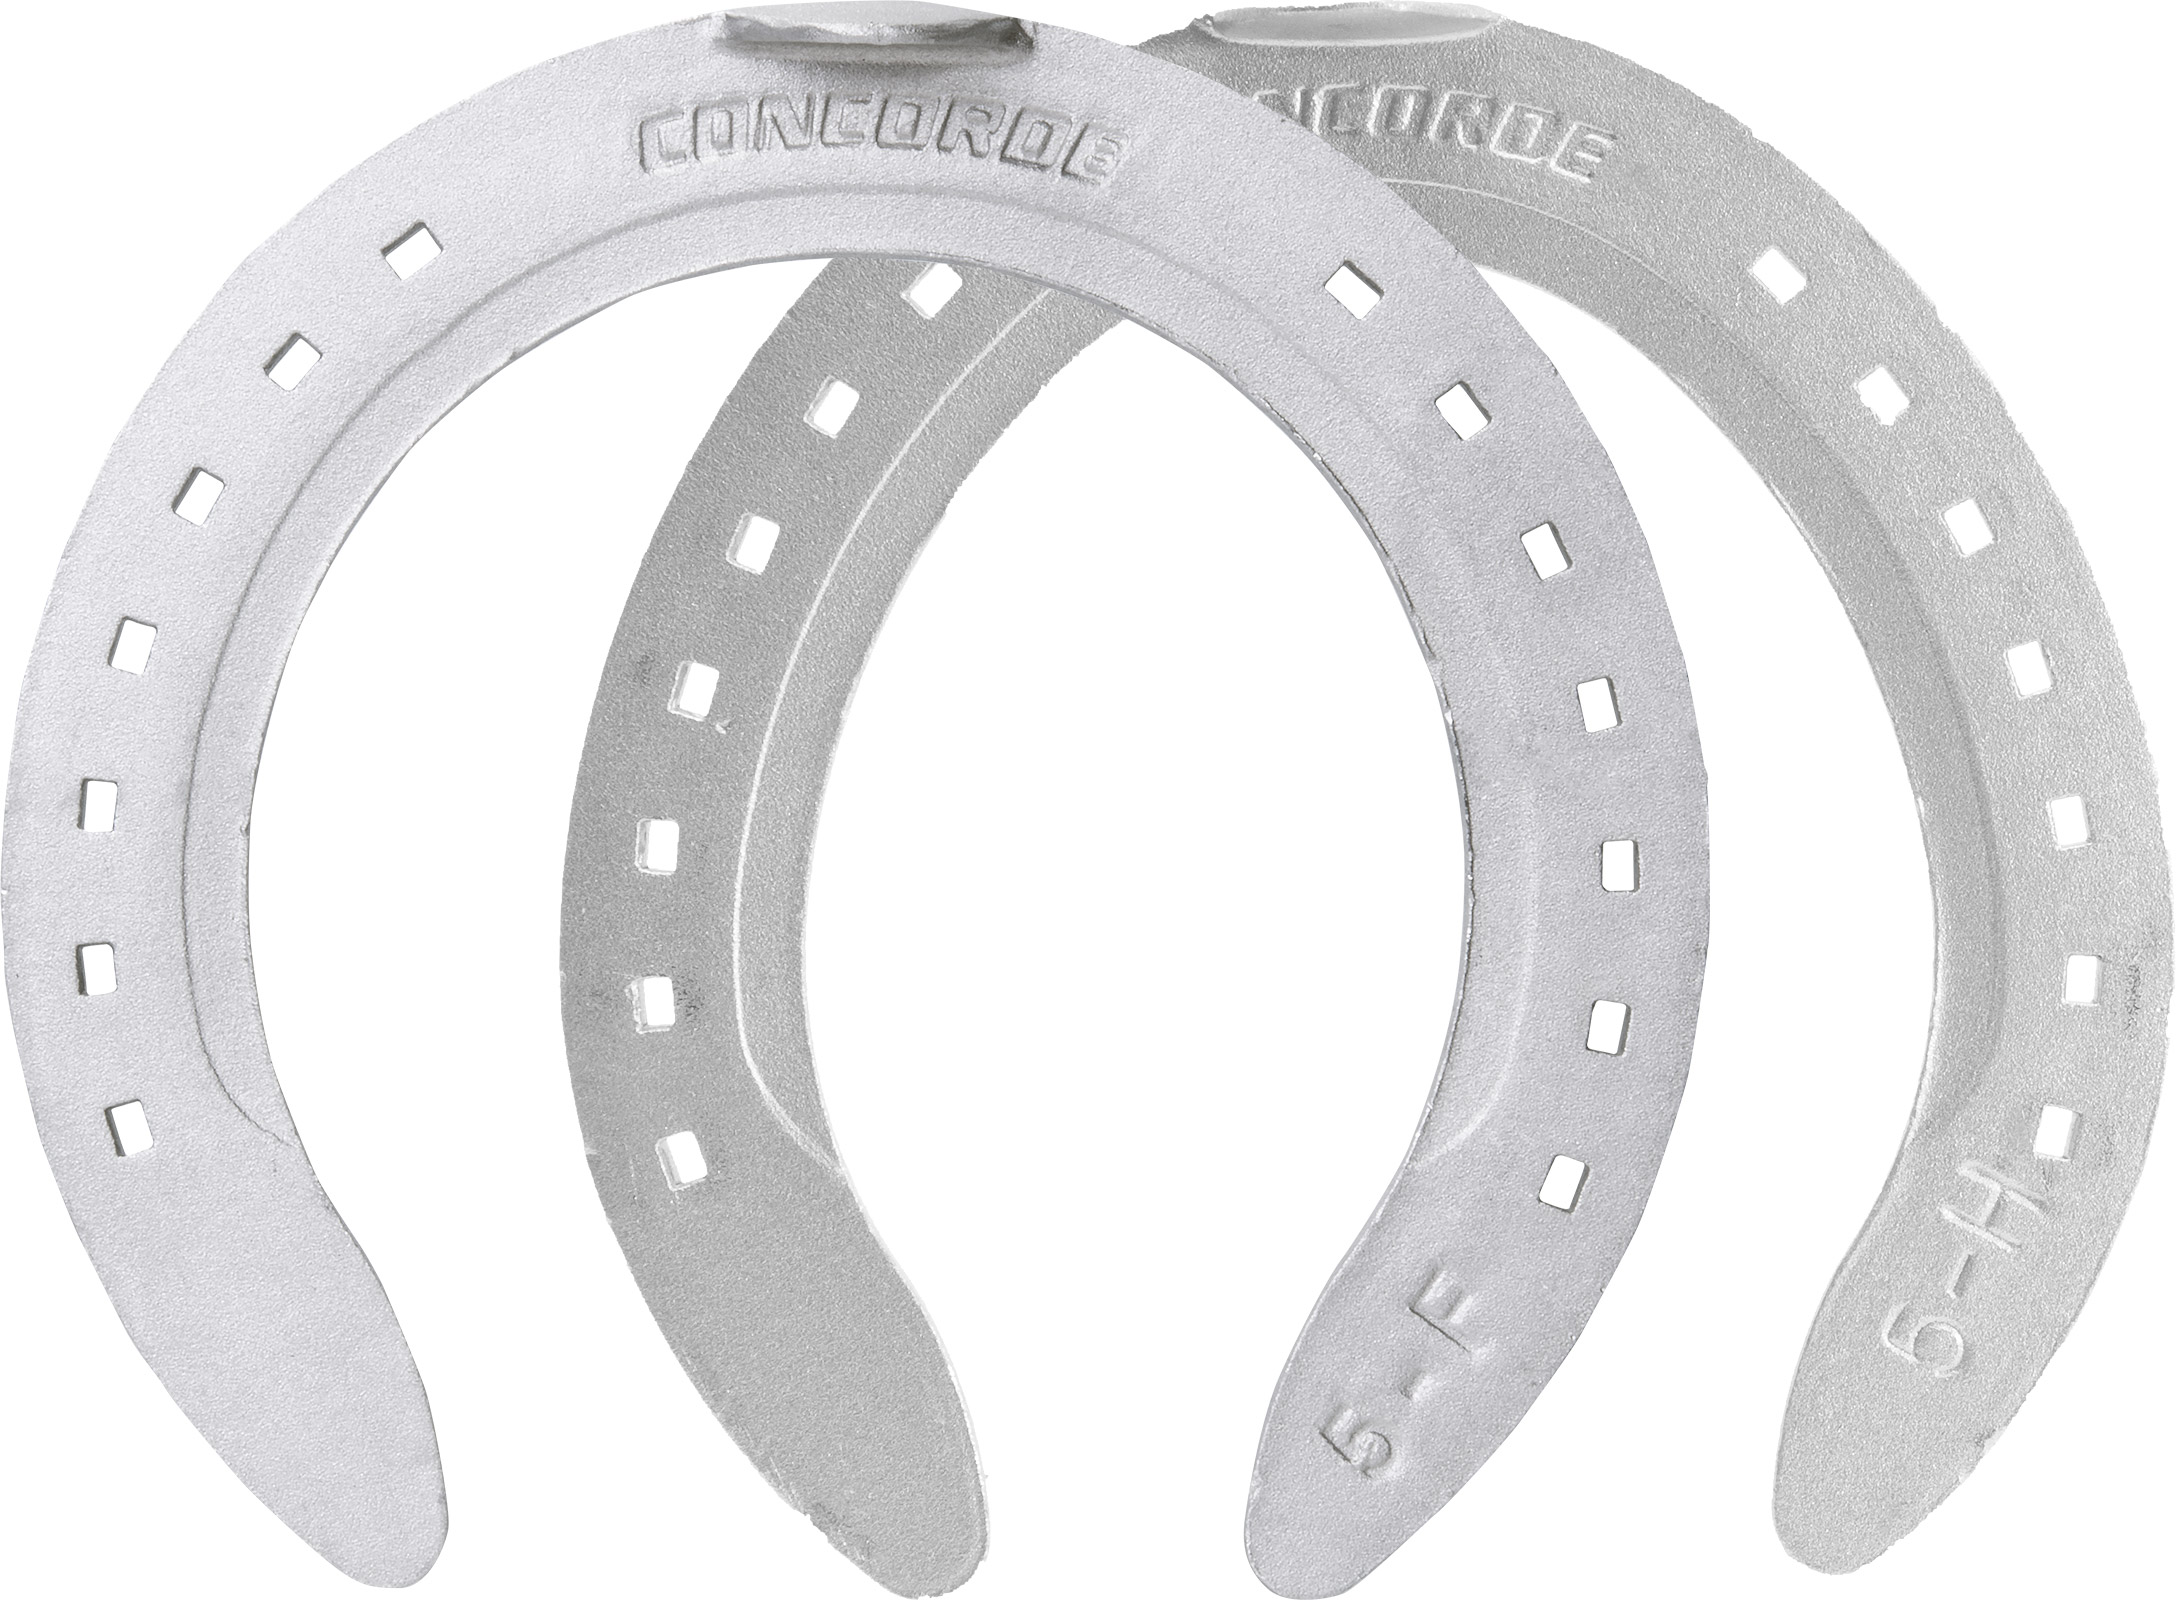 St. Croix Concorde Aluminum horseshoes, front and hind, hoof side view